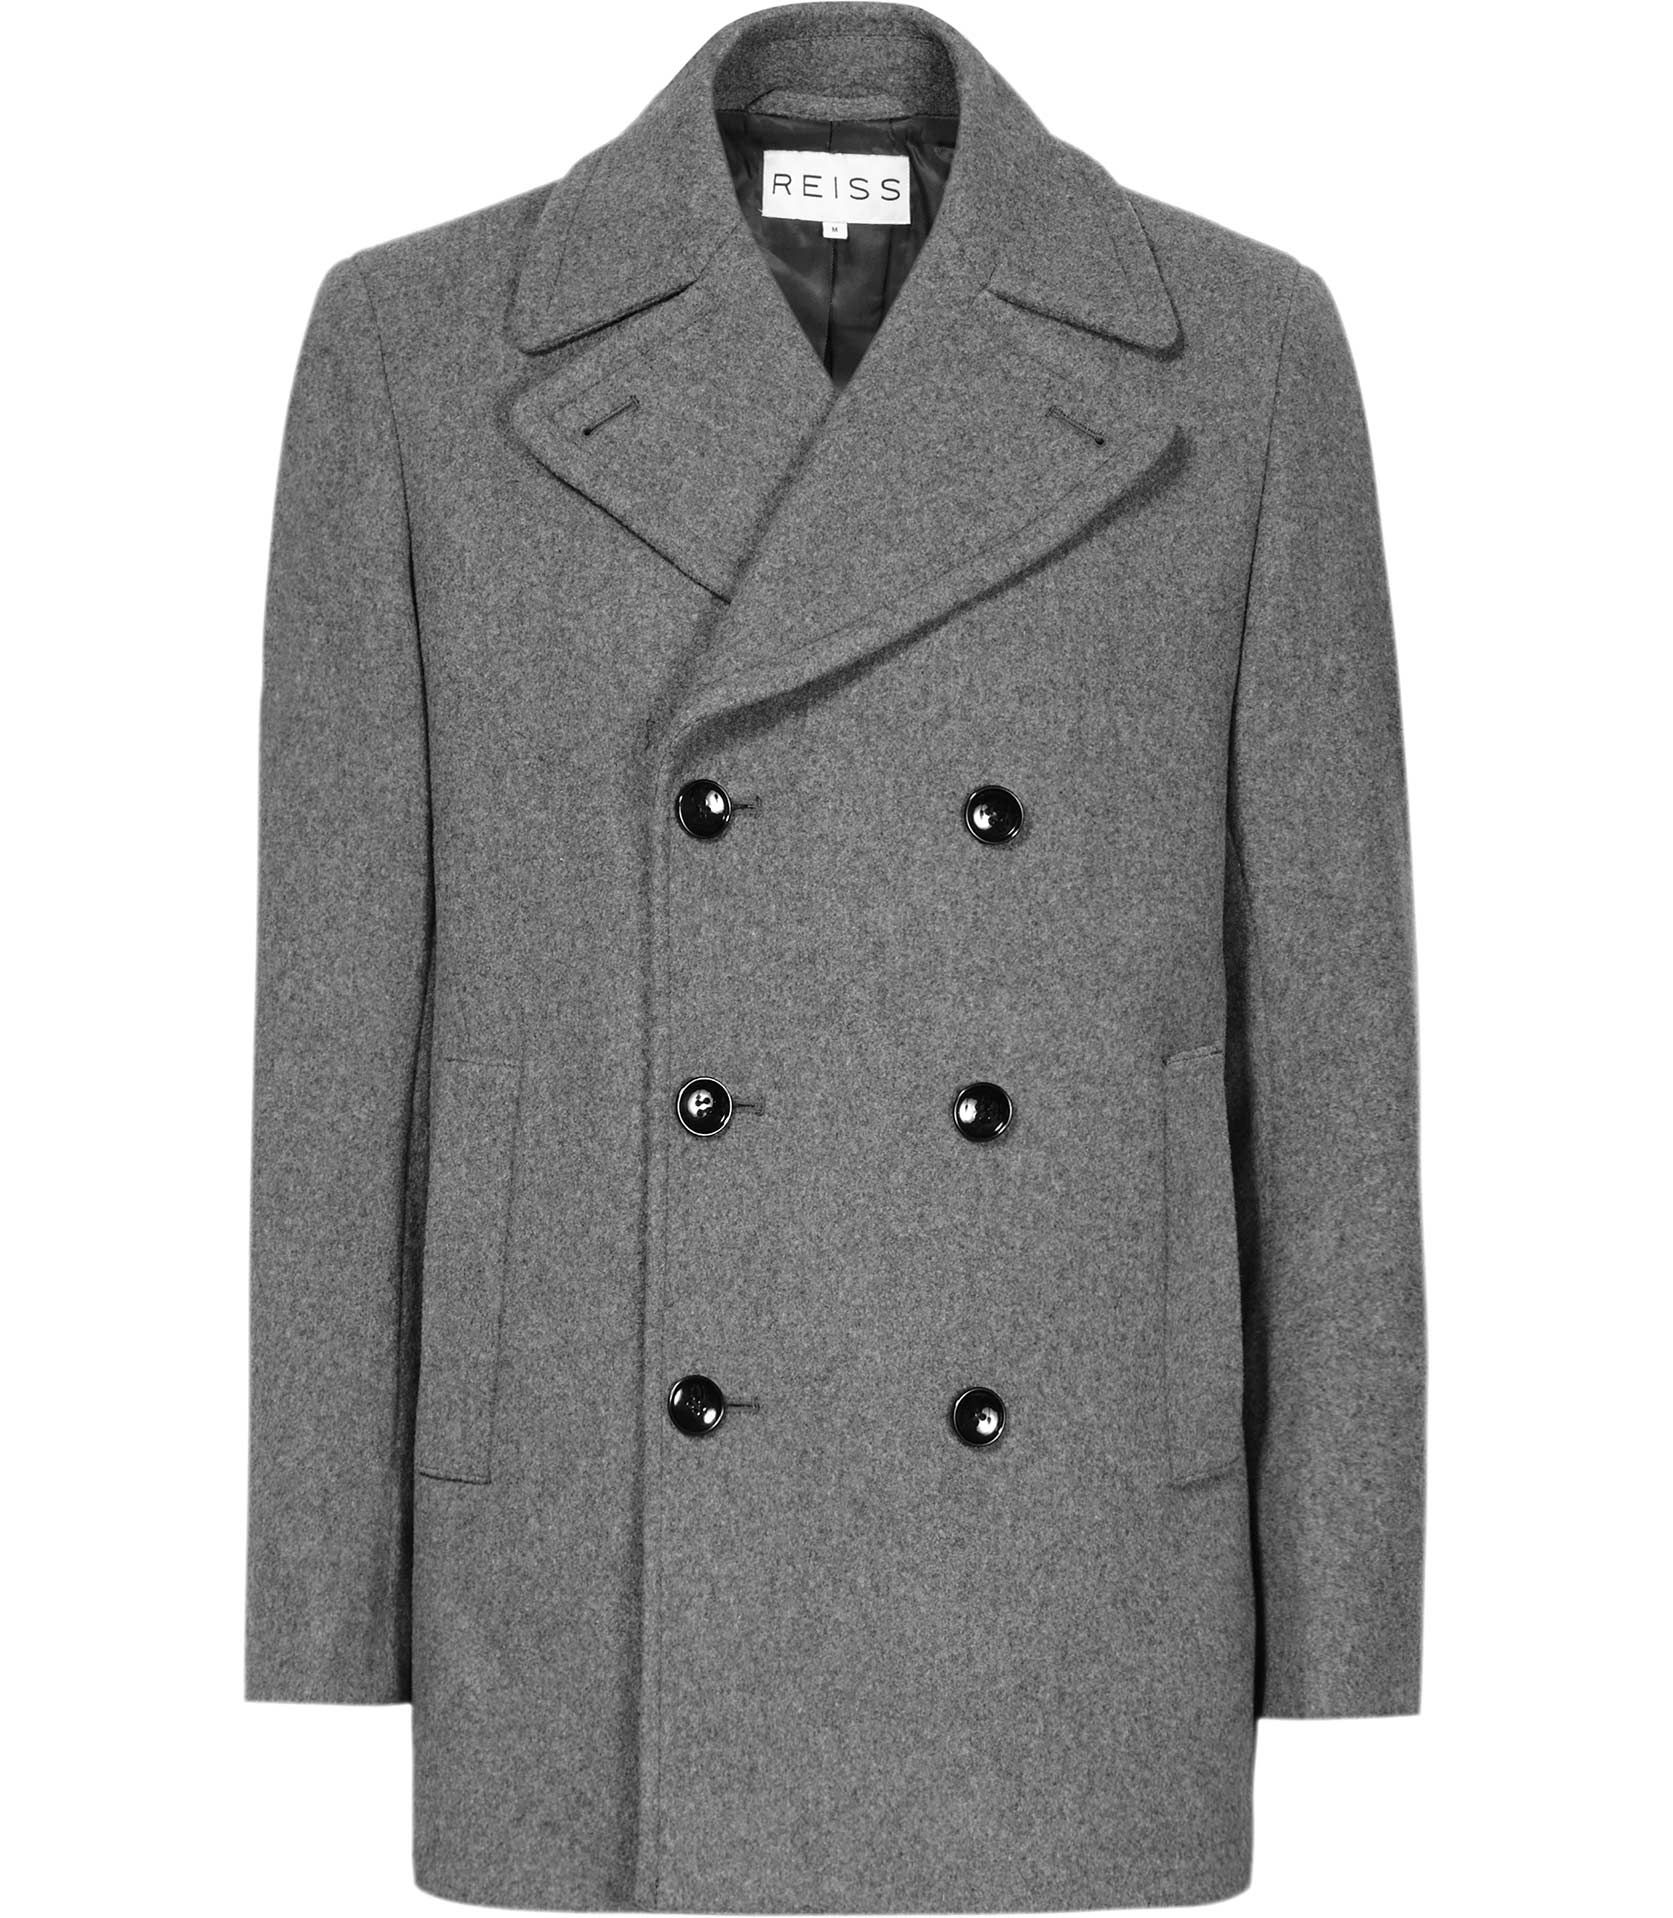 Benares - Denim | Grey, Peacoats and Roman